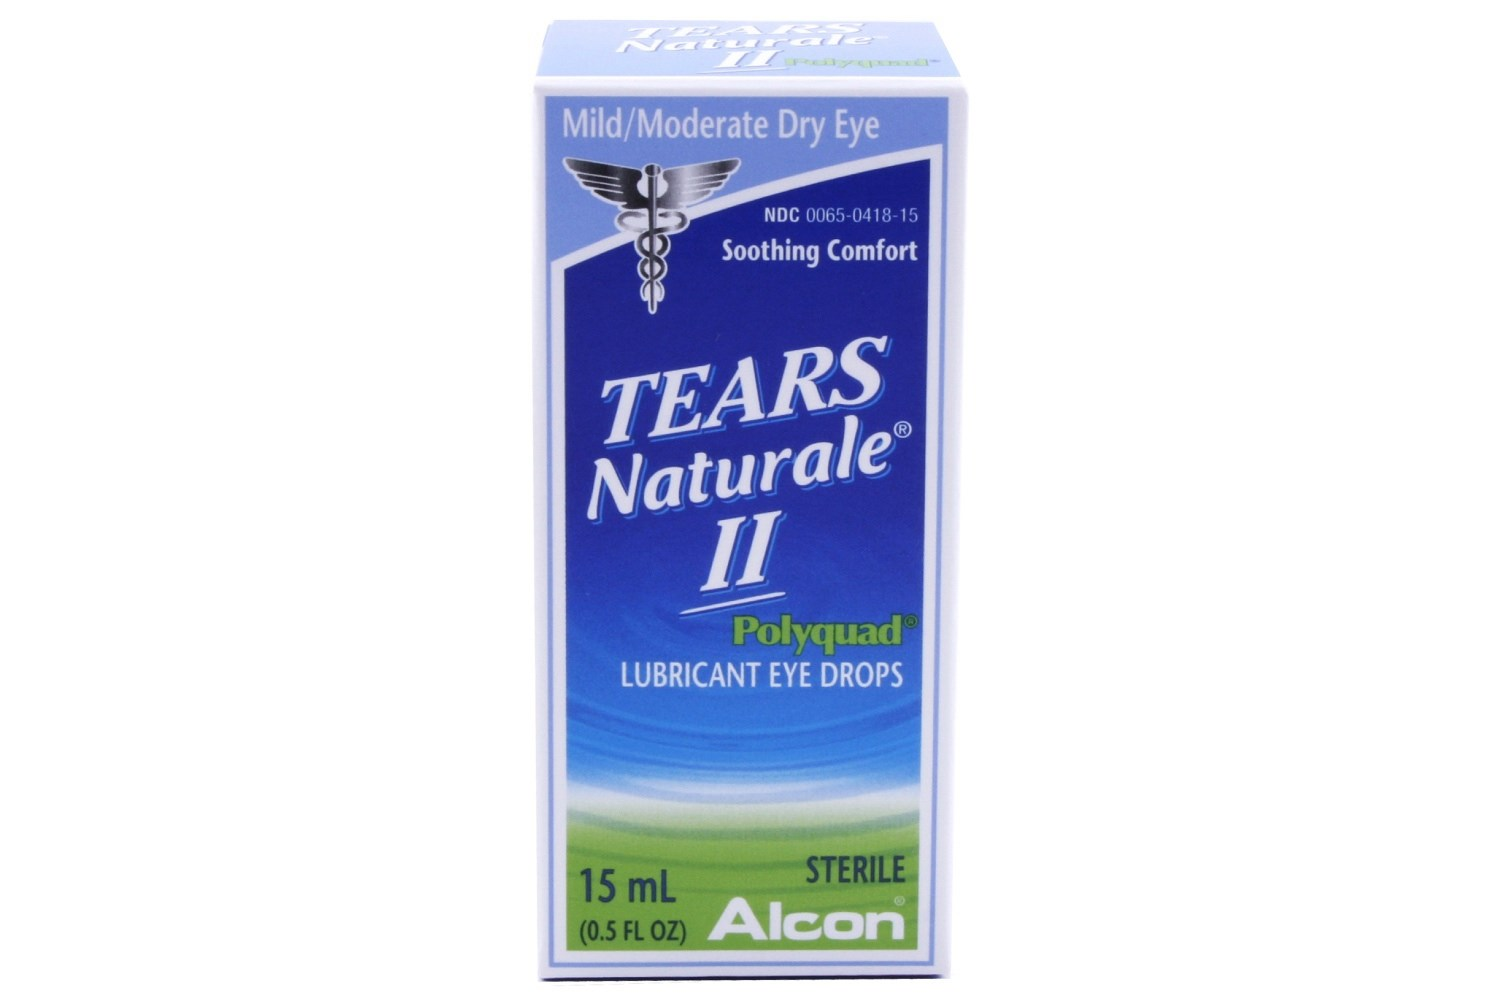 Tears Naturale II Polyquad Dry Eye Relief 5 fl oz